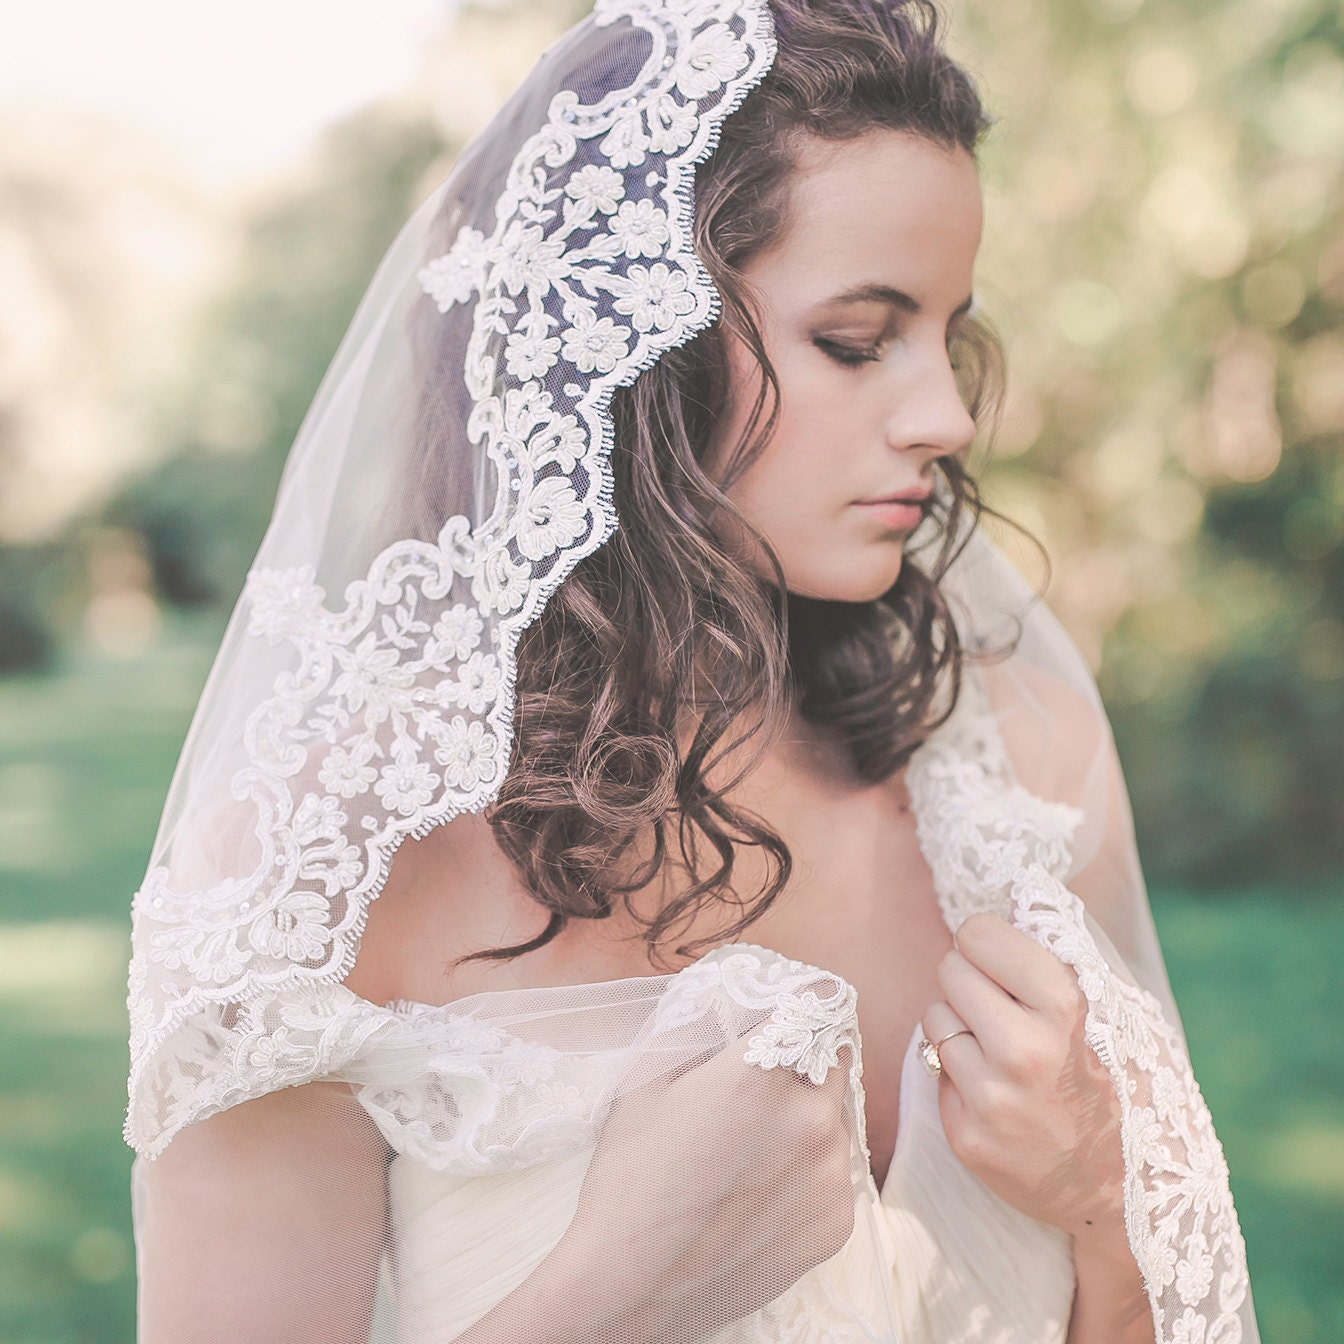 Headpieces For Wedding Veils: Wedding Veils & Bridal Accessories By NoonOnTheMoon On Etsy